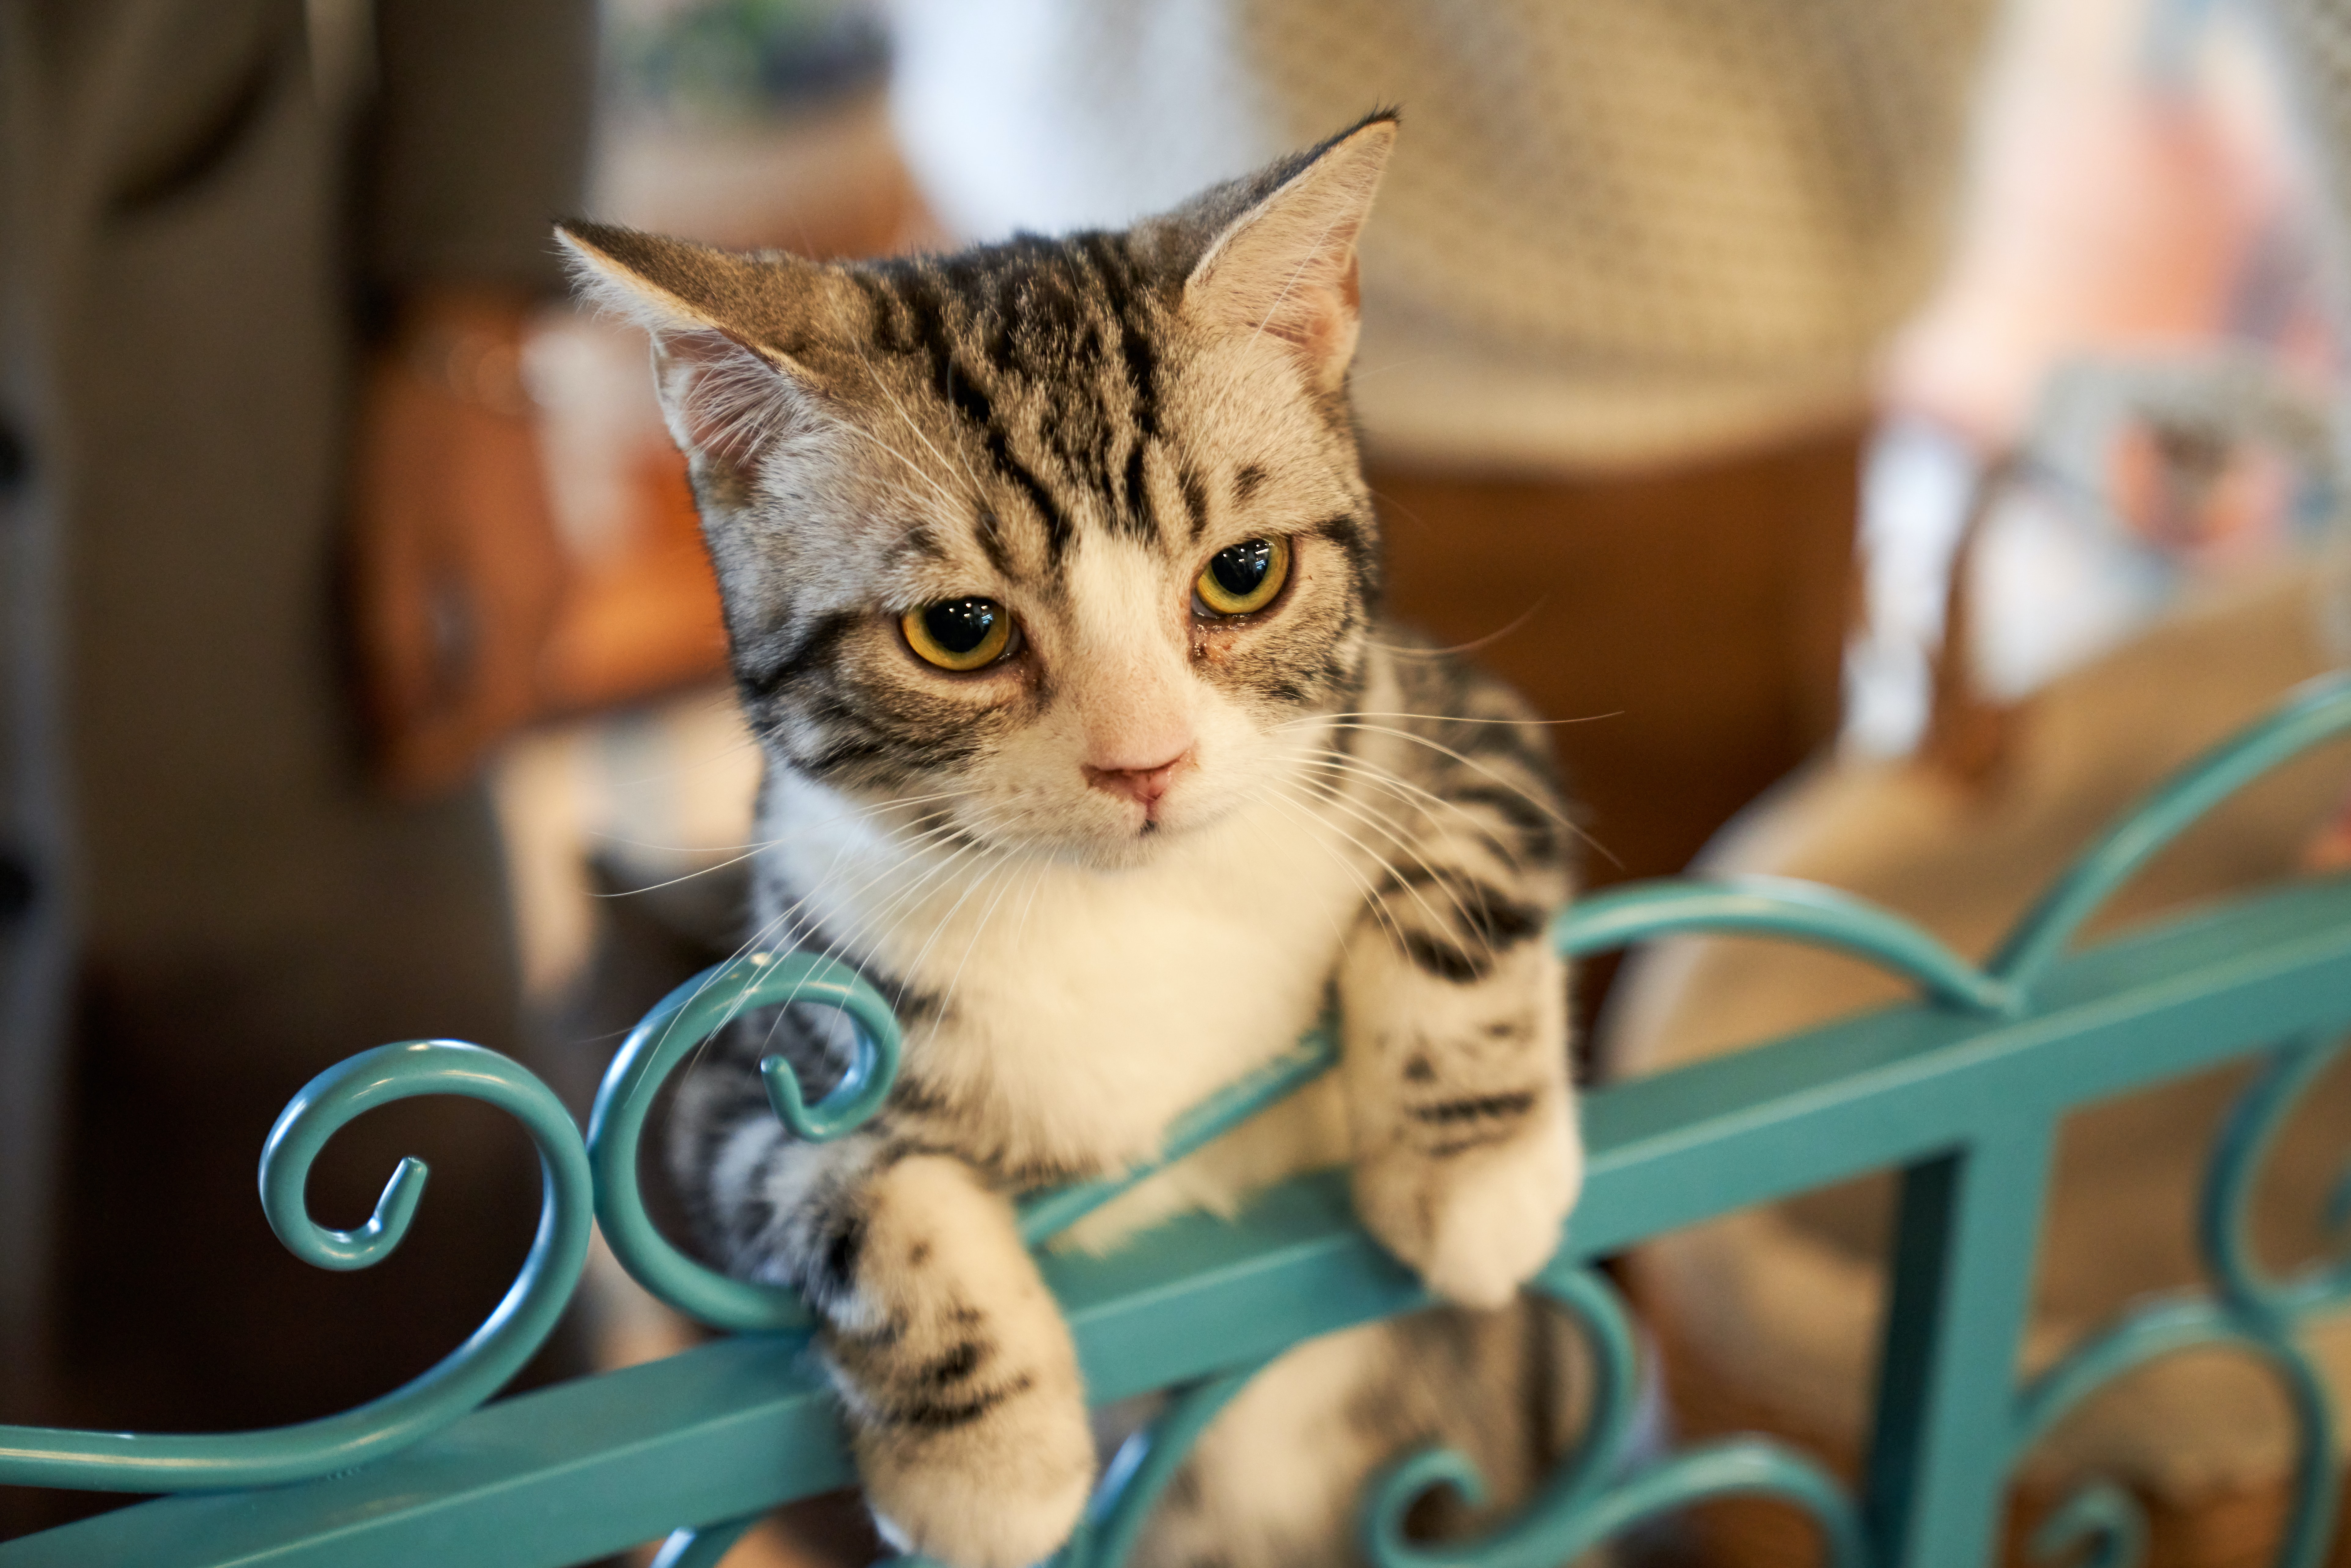 brown tabby cat on teal metal gate